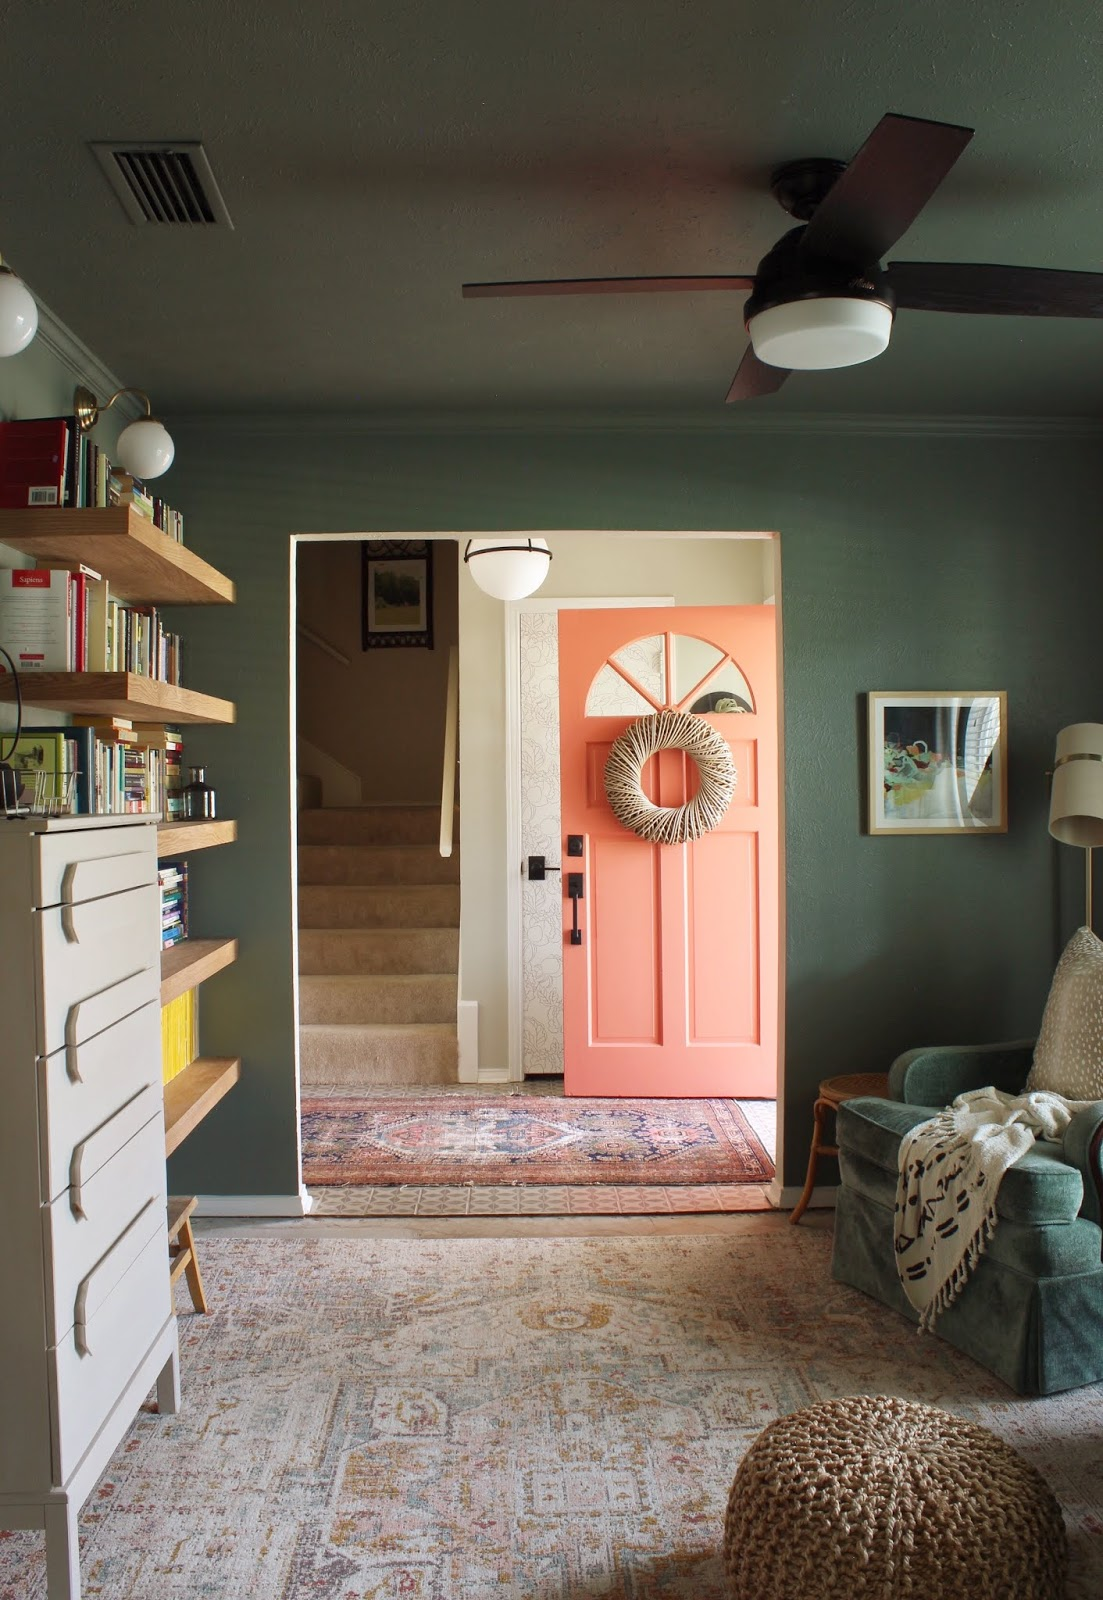 The One Room Challenge is over and I'm so excited to show you our reading room / library / pah-lah (that's southern for parlor). It was quite the transformation. My husband built amazing shelves and for the first time ever all of his books are in one place... and it's super dreamy. | House Homemade